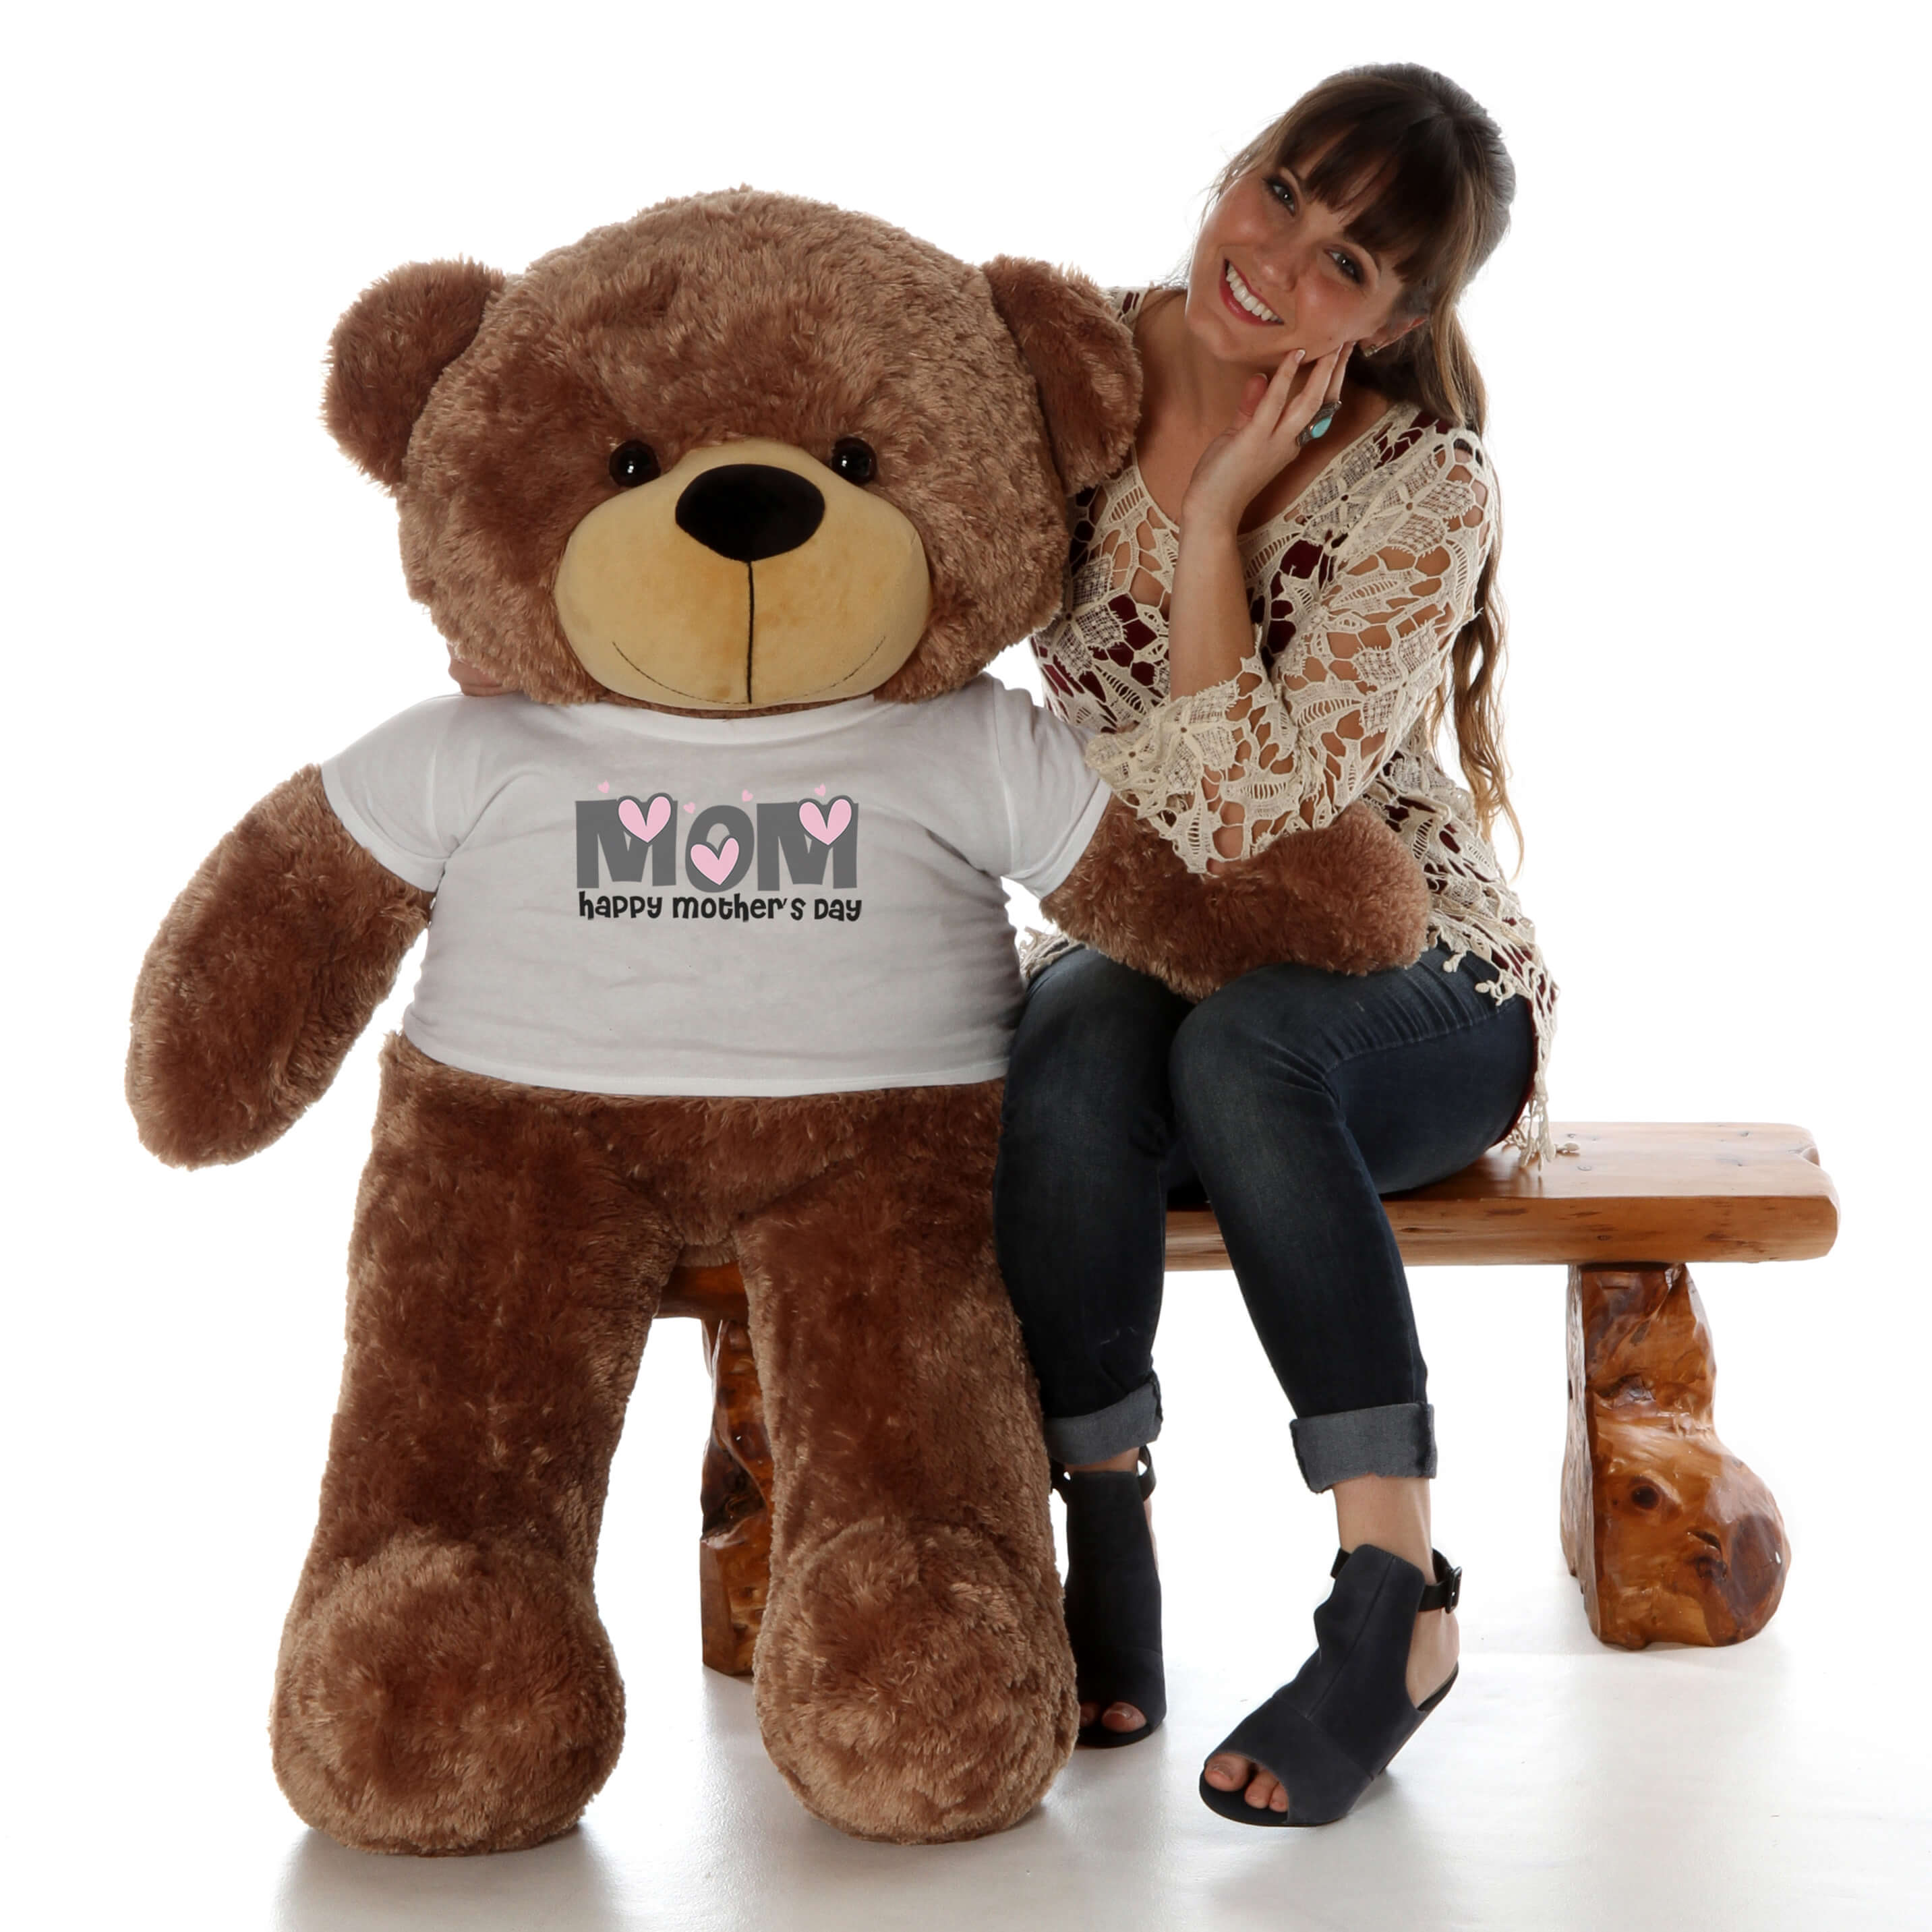 4ft-sunny-cuddles-mocha-brown-teddy-bear-for-mothers-day-1.jpg